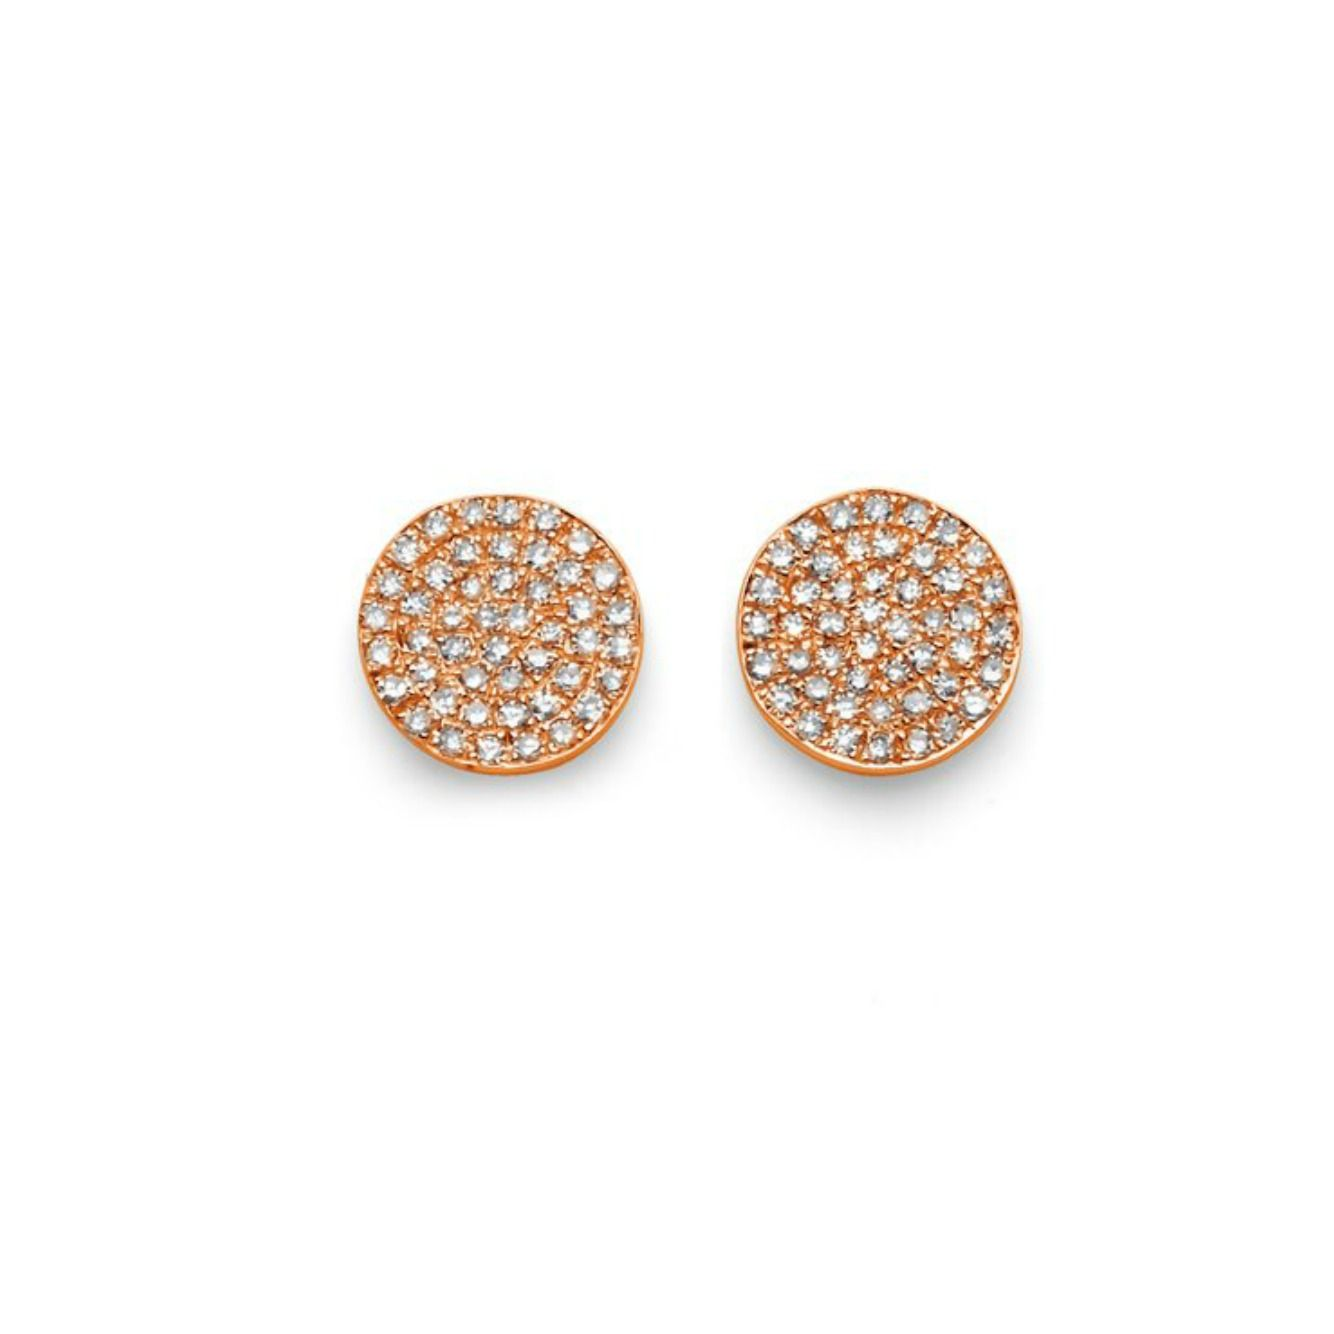 These Pavé Disk Earrings Are Simply Beautiful Set In Four Karat Rose Gold The Carats Of Diamonds Make Another Must Have